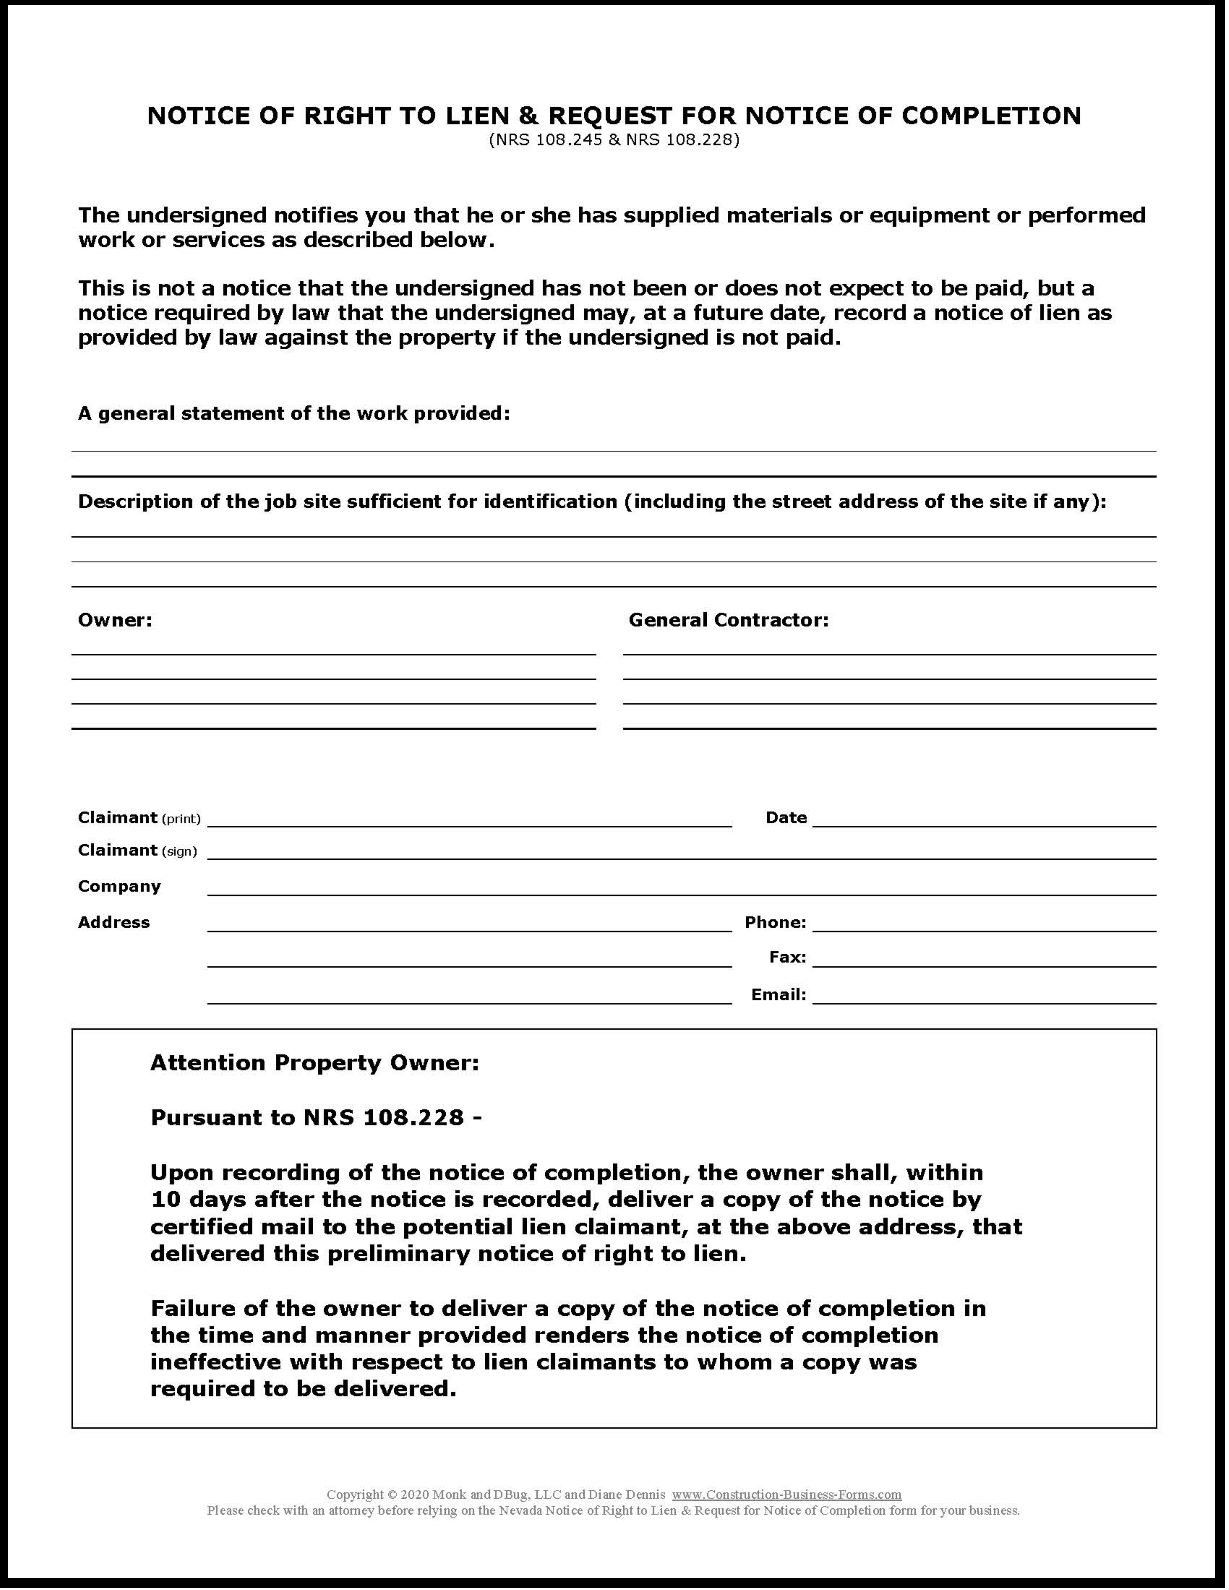 Nevada Notice Of Right To Lien Request For Notice Of Completion